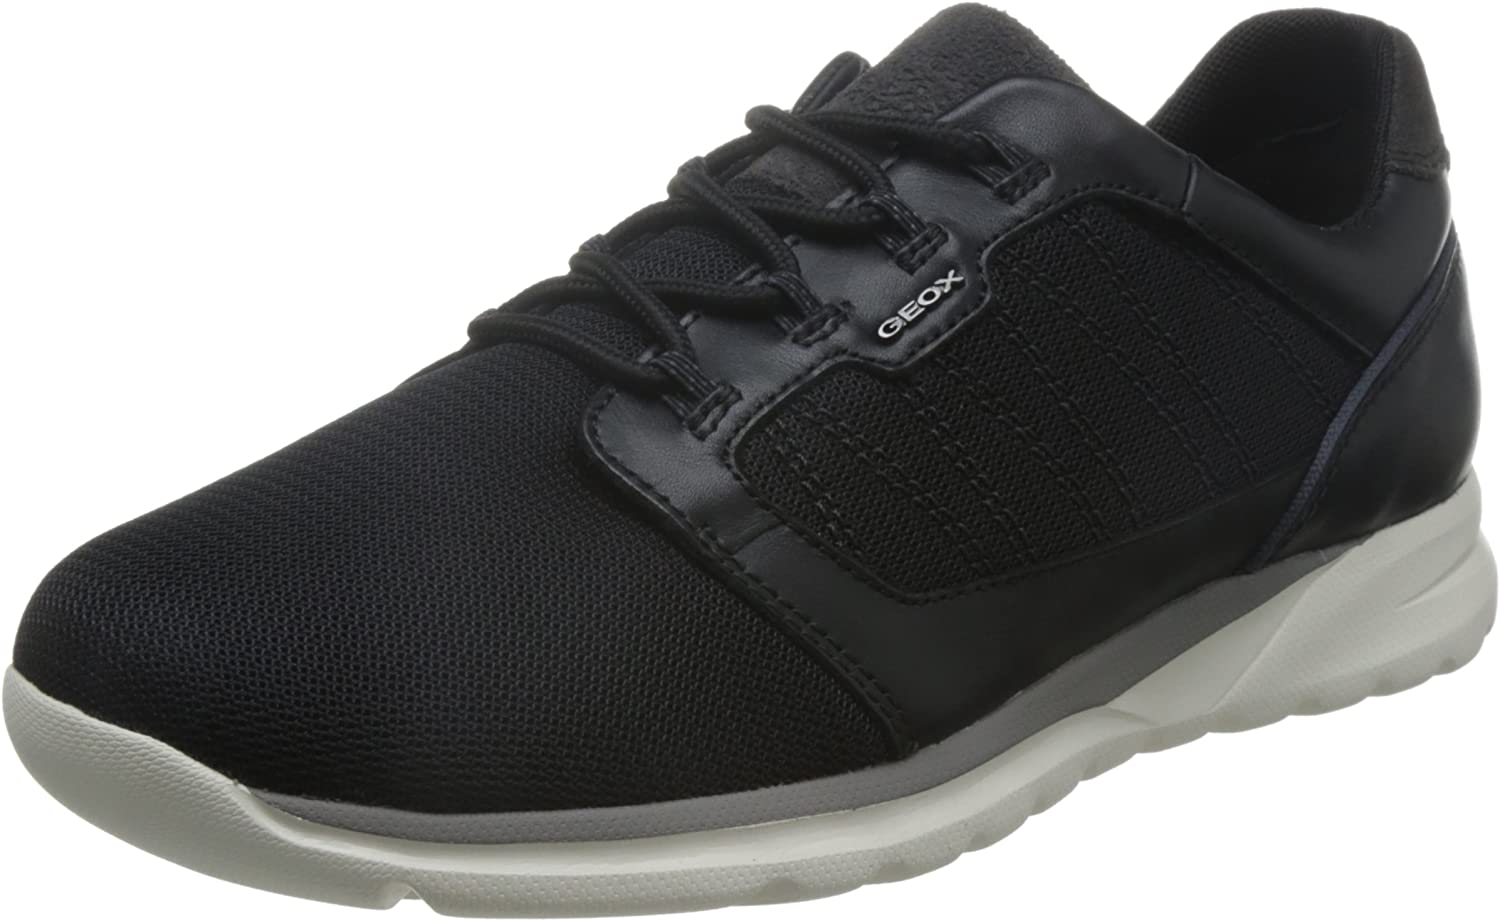 SHOE GEOX U720HA 01485 C9999 U DAMIAN BLACK